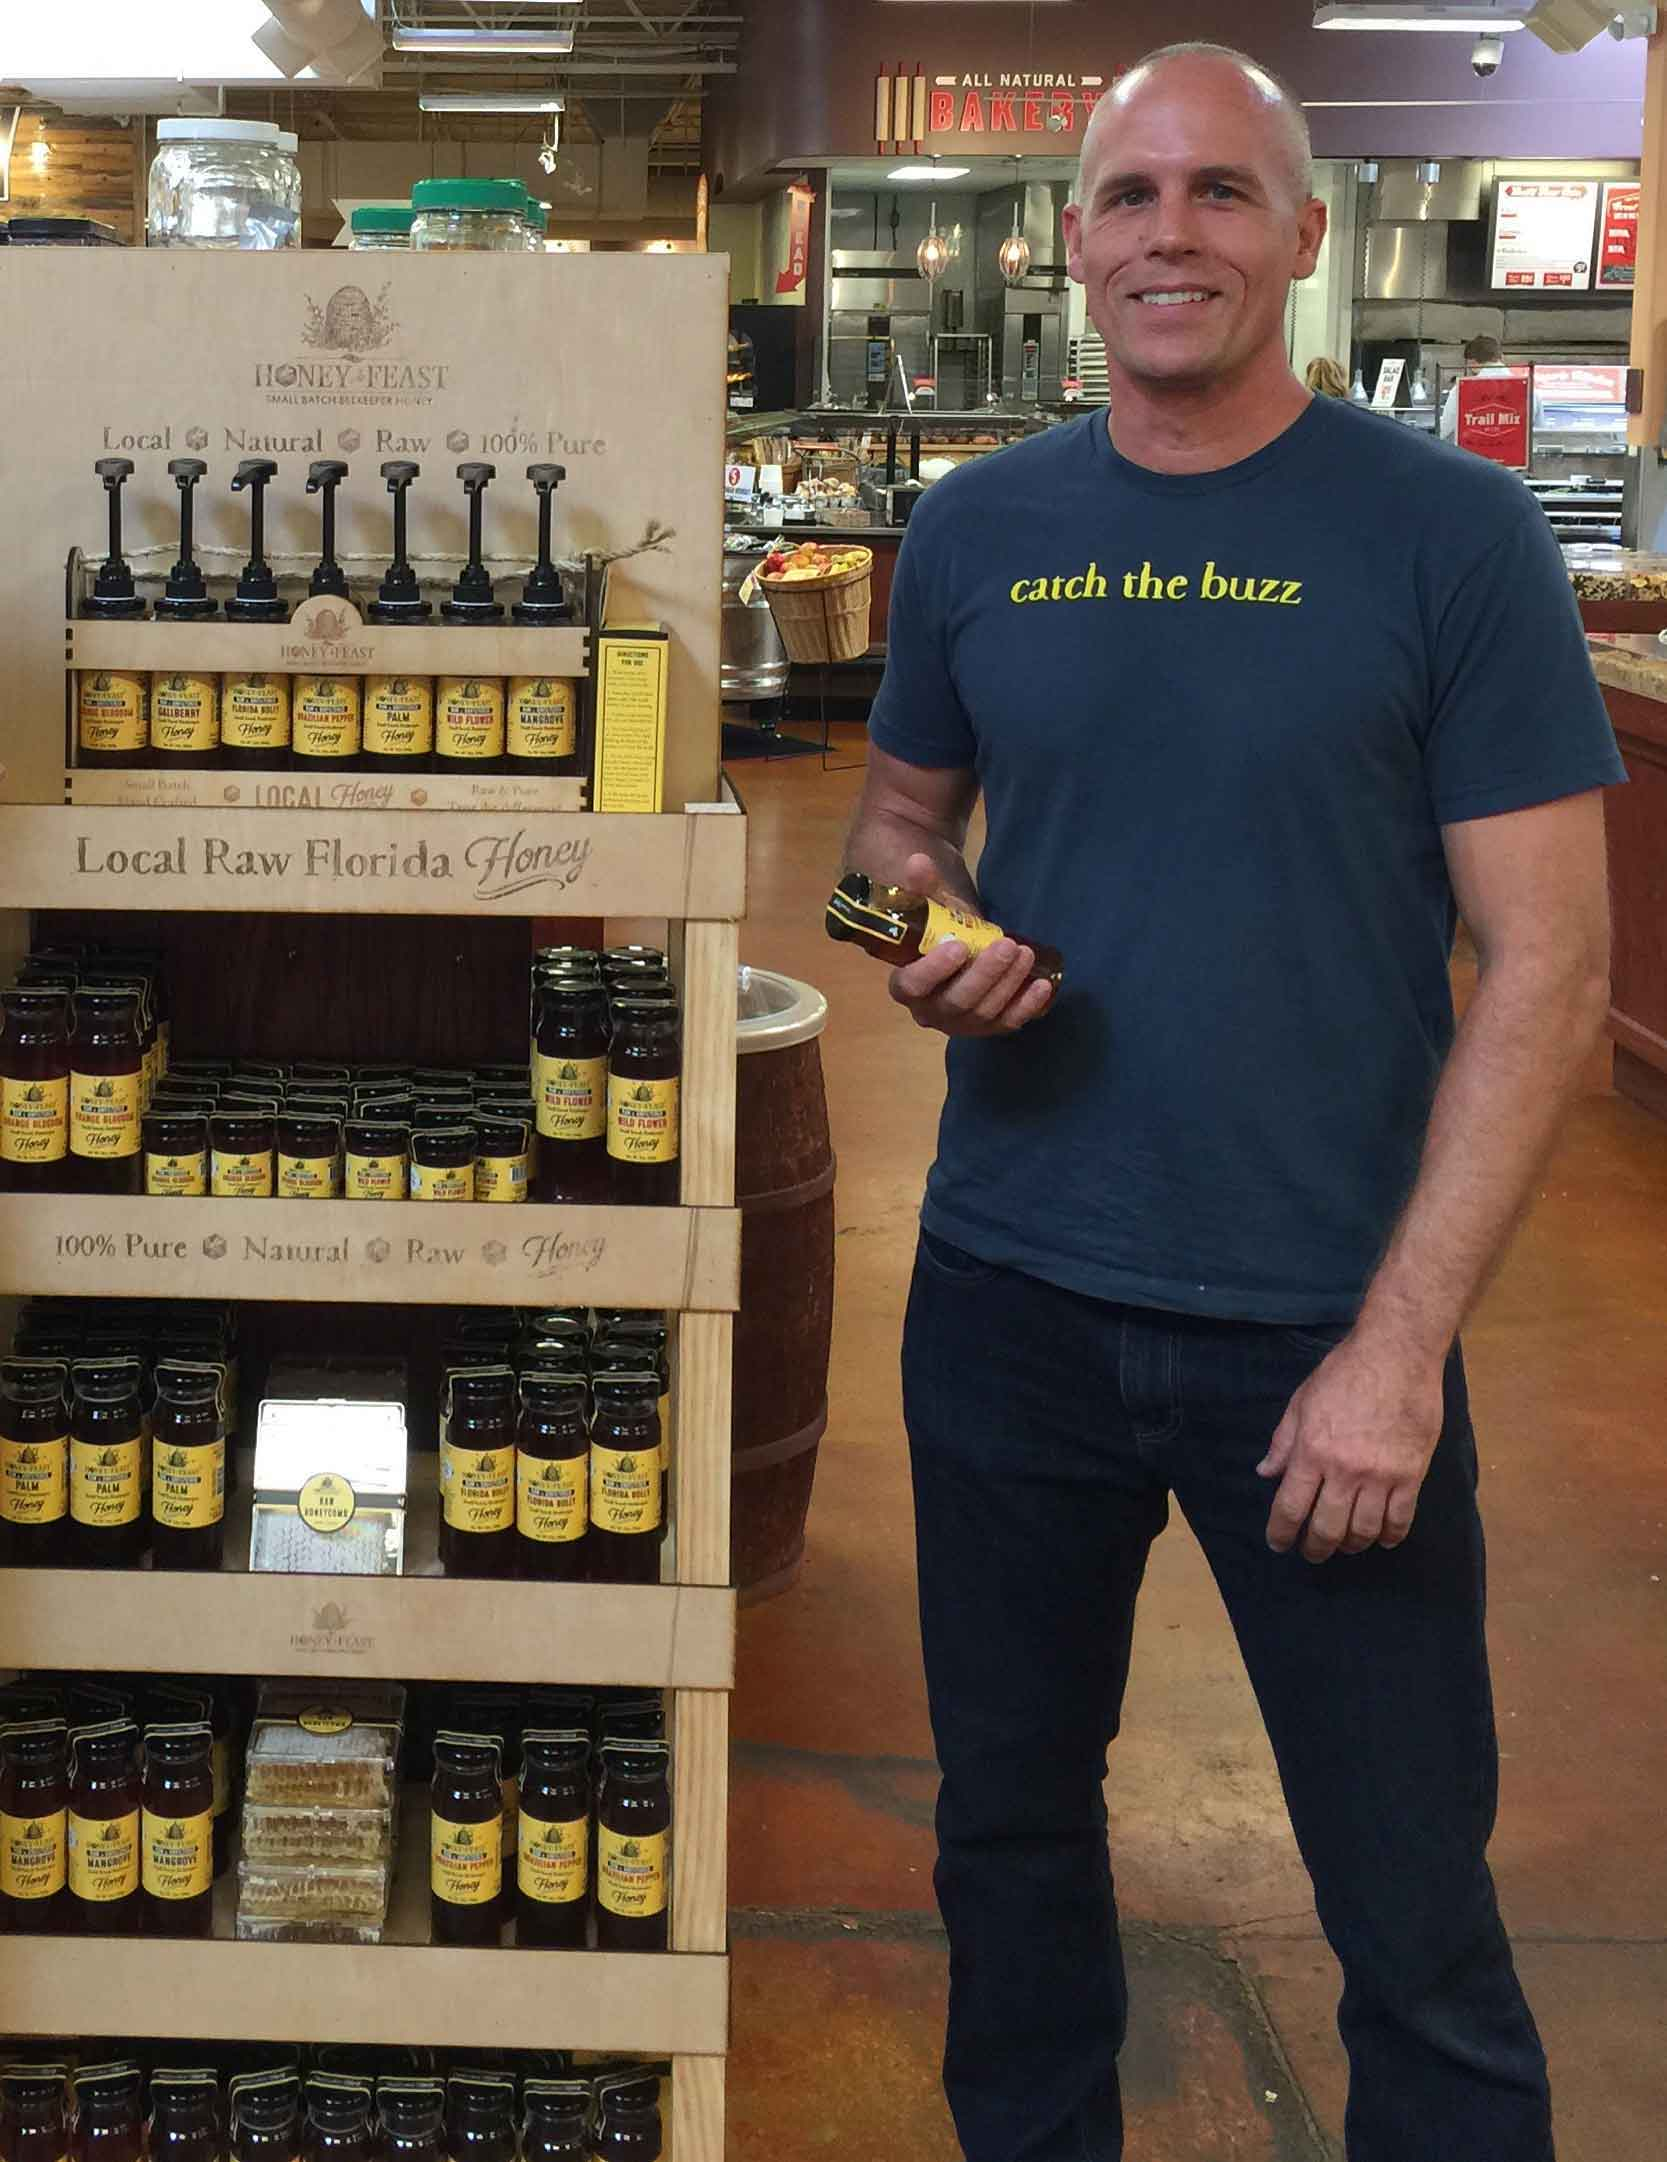 charlie holding a jar of mangrove honey in the store pic